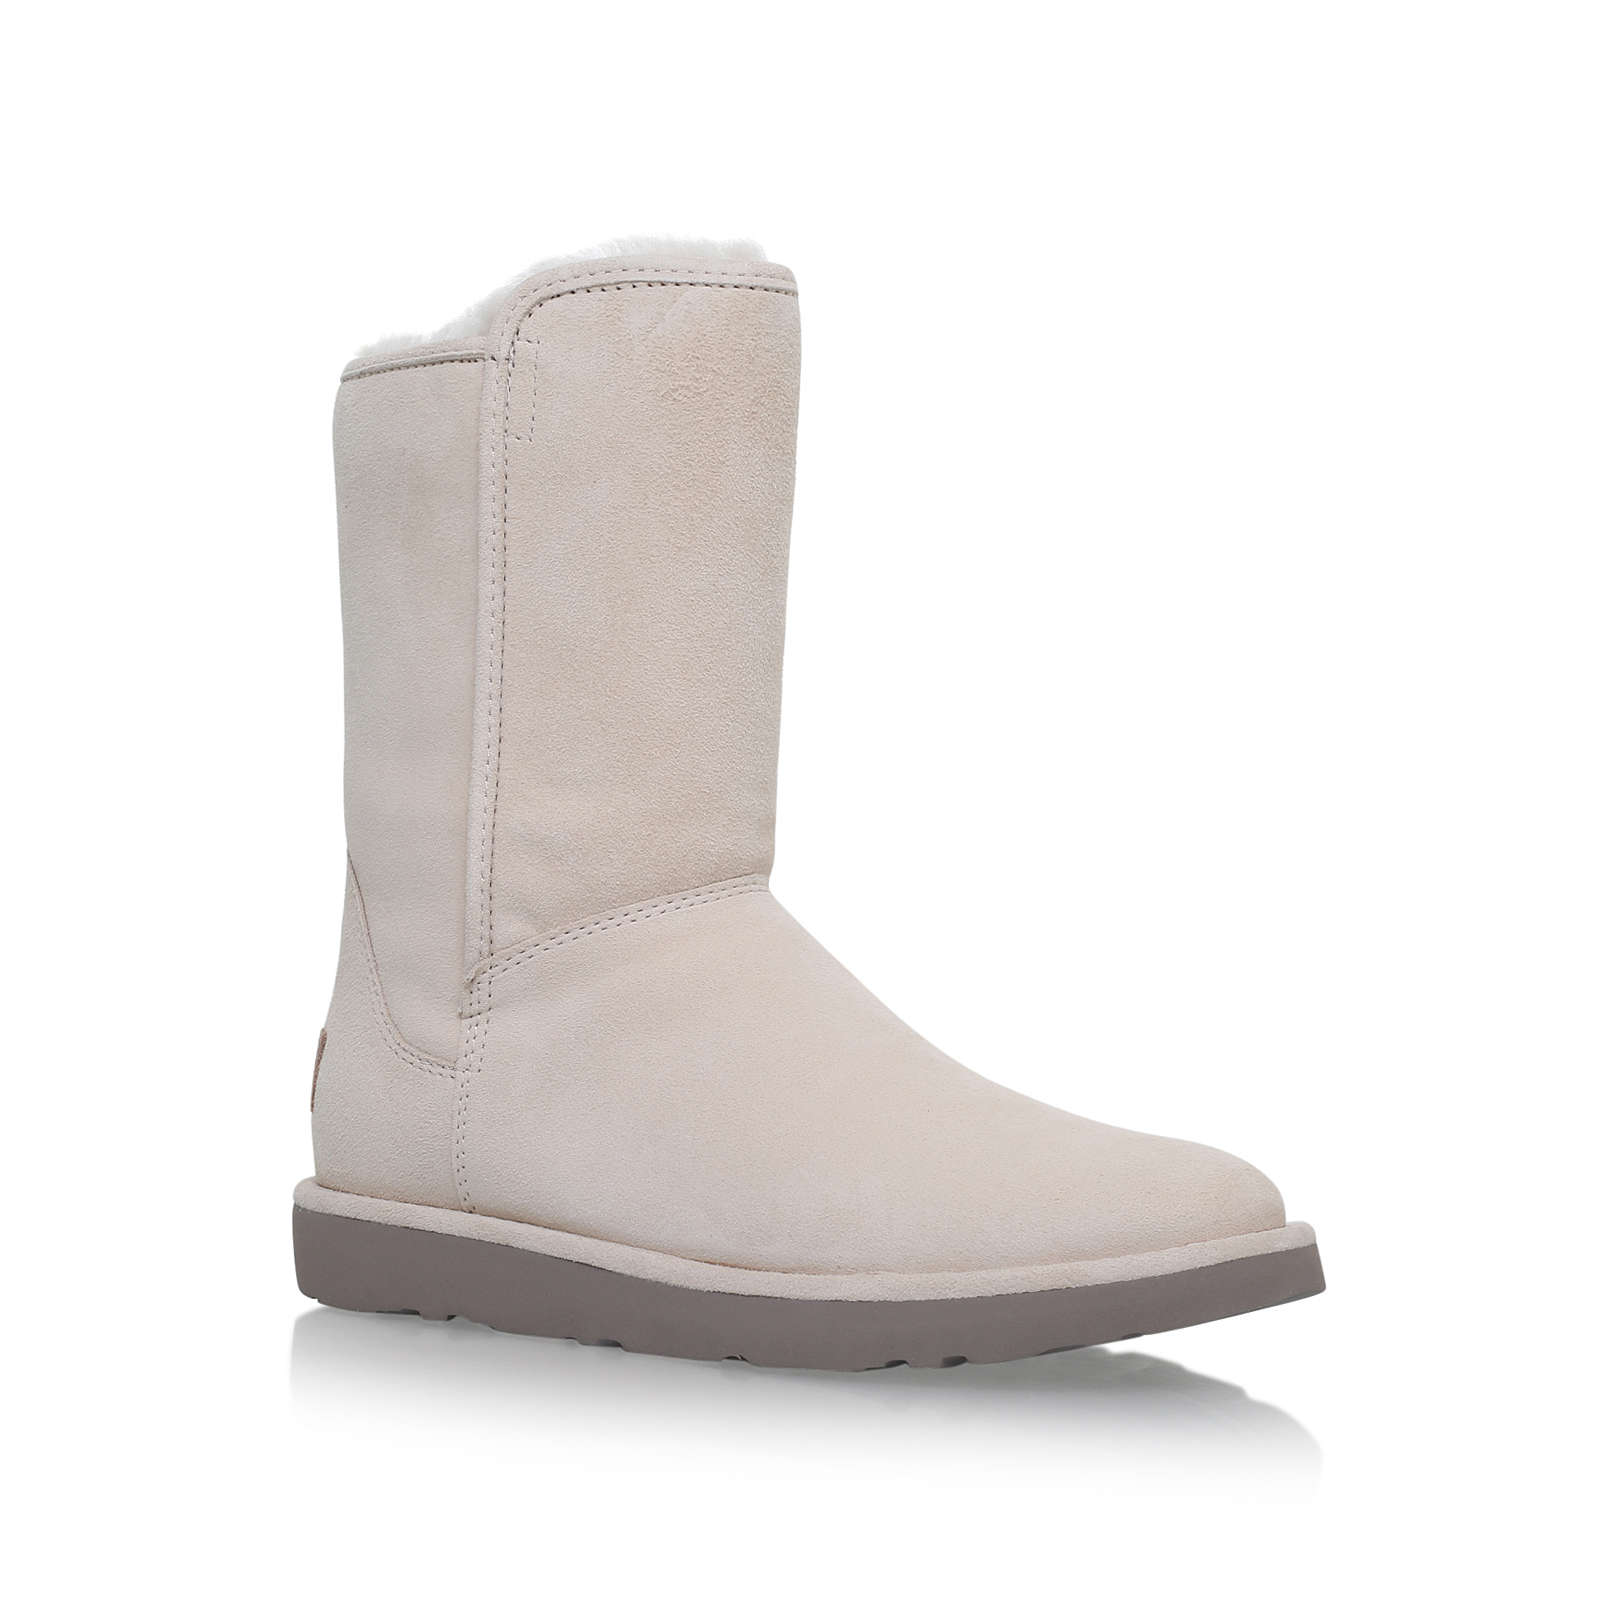 Flat Ugg Suede Calf Abree Ii White Mid By Short Boots wqxCEXAnES dd3ab6df4